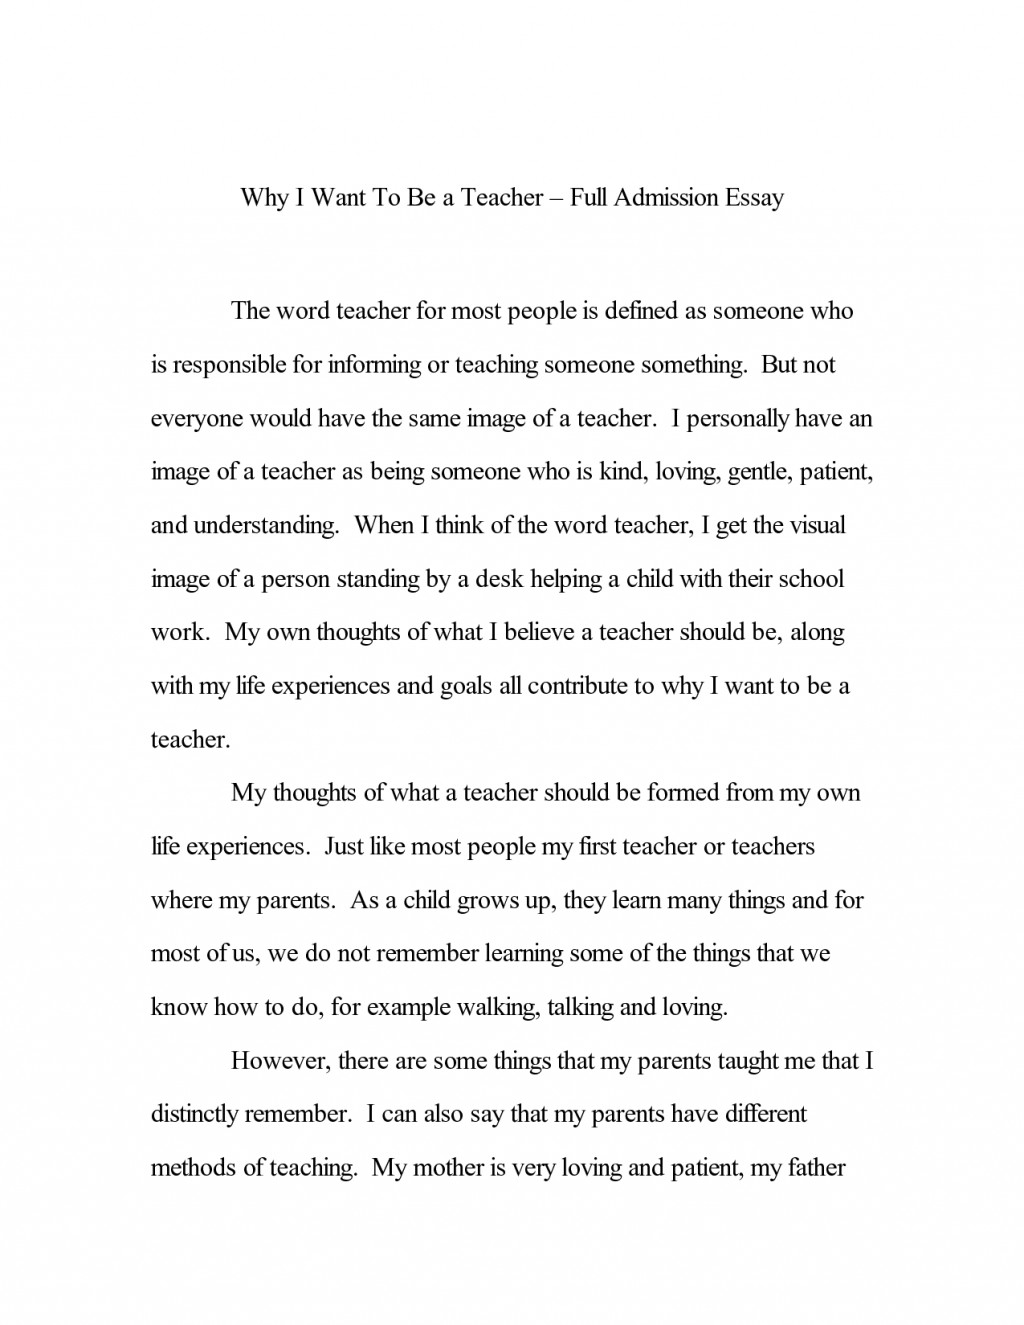 006 Zcwrpapbvx College Entry Essay Amazing Admissions Tips Application Personal Statement 12 Admission Essays That Worked Large